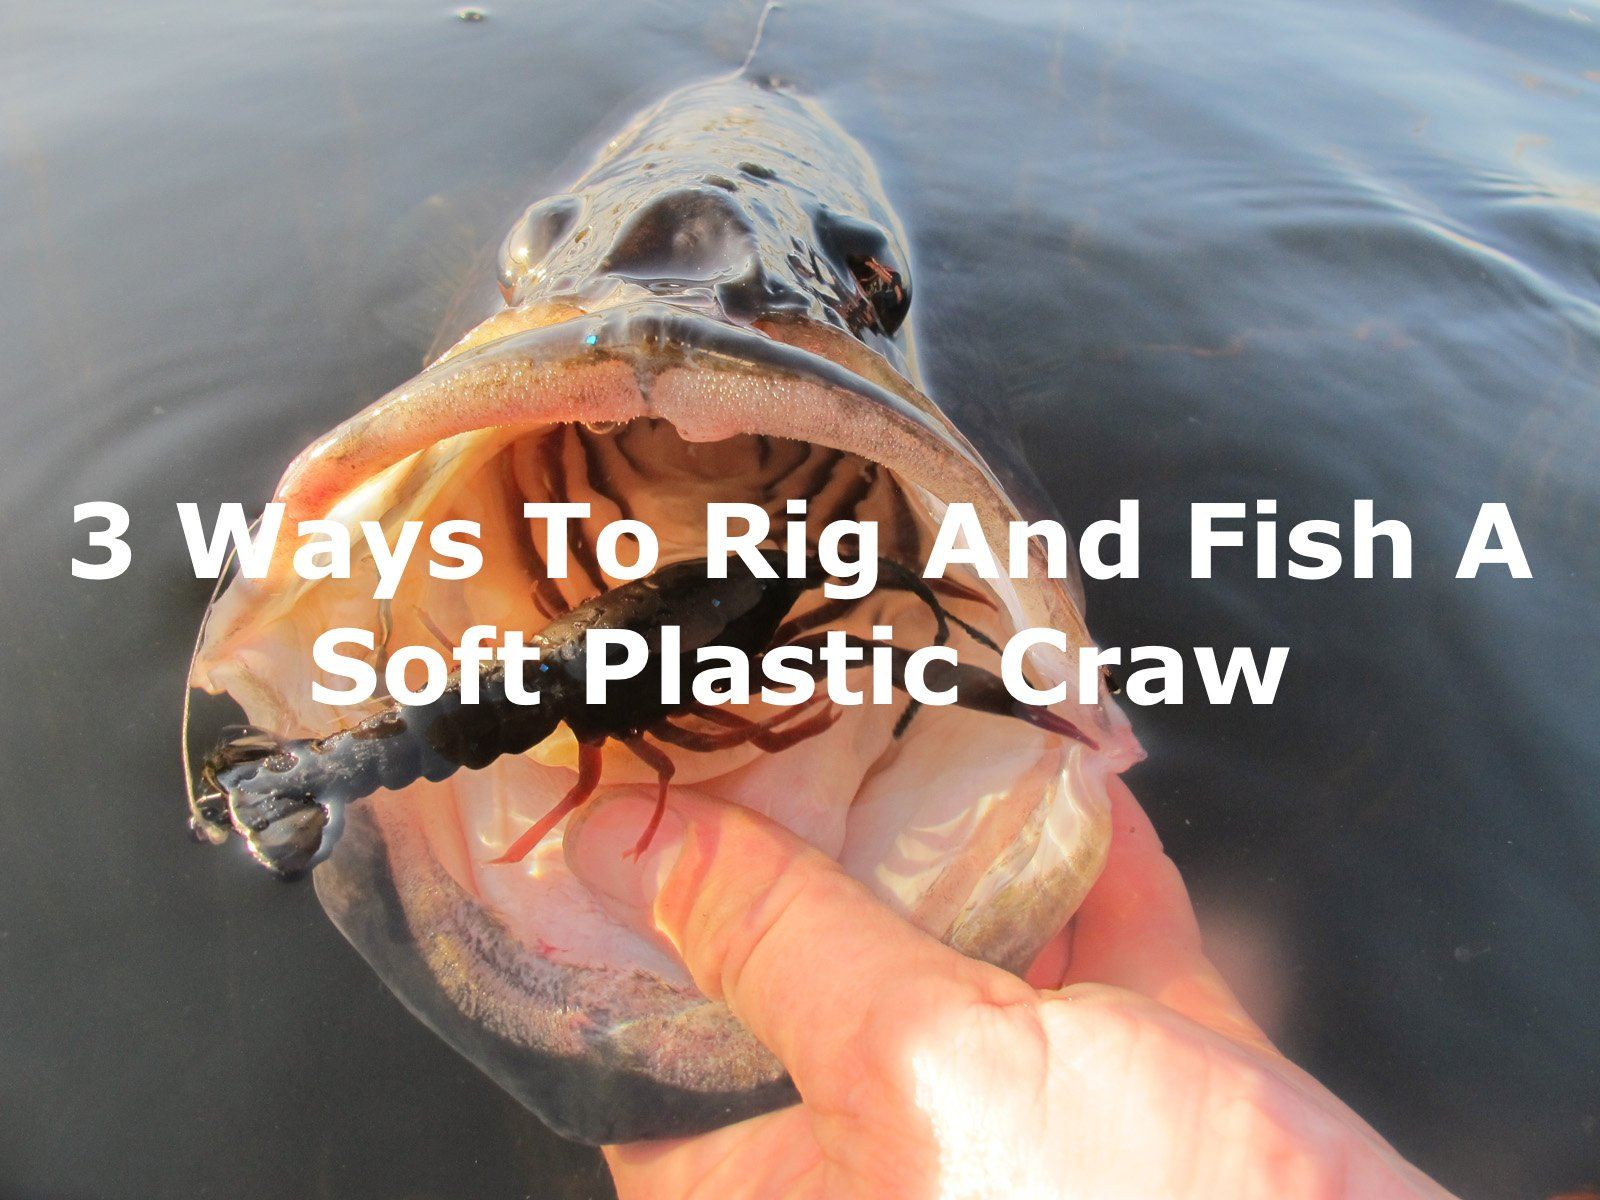 3 Ways To Rig And Fish A Soft Plastic Craw